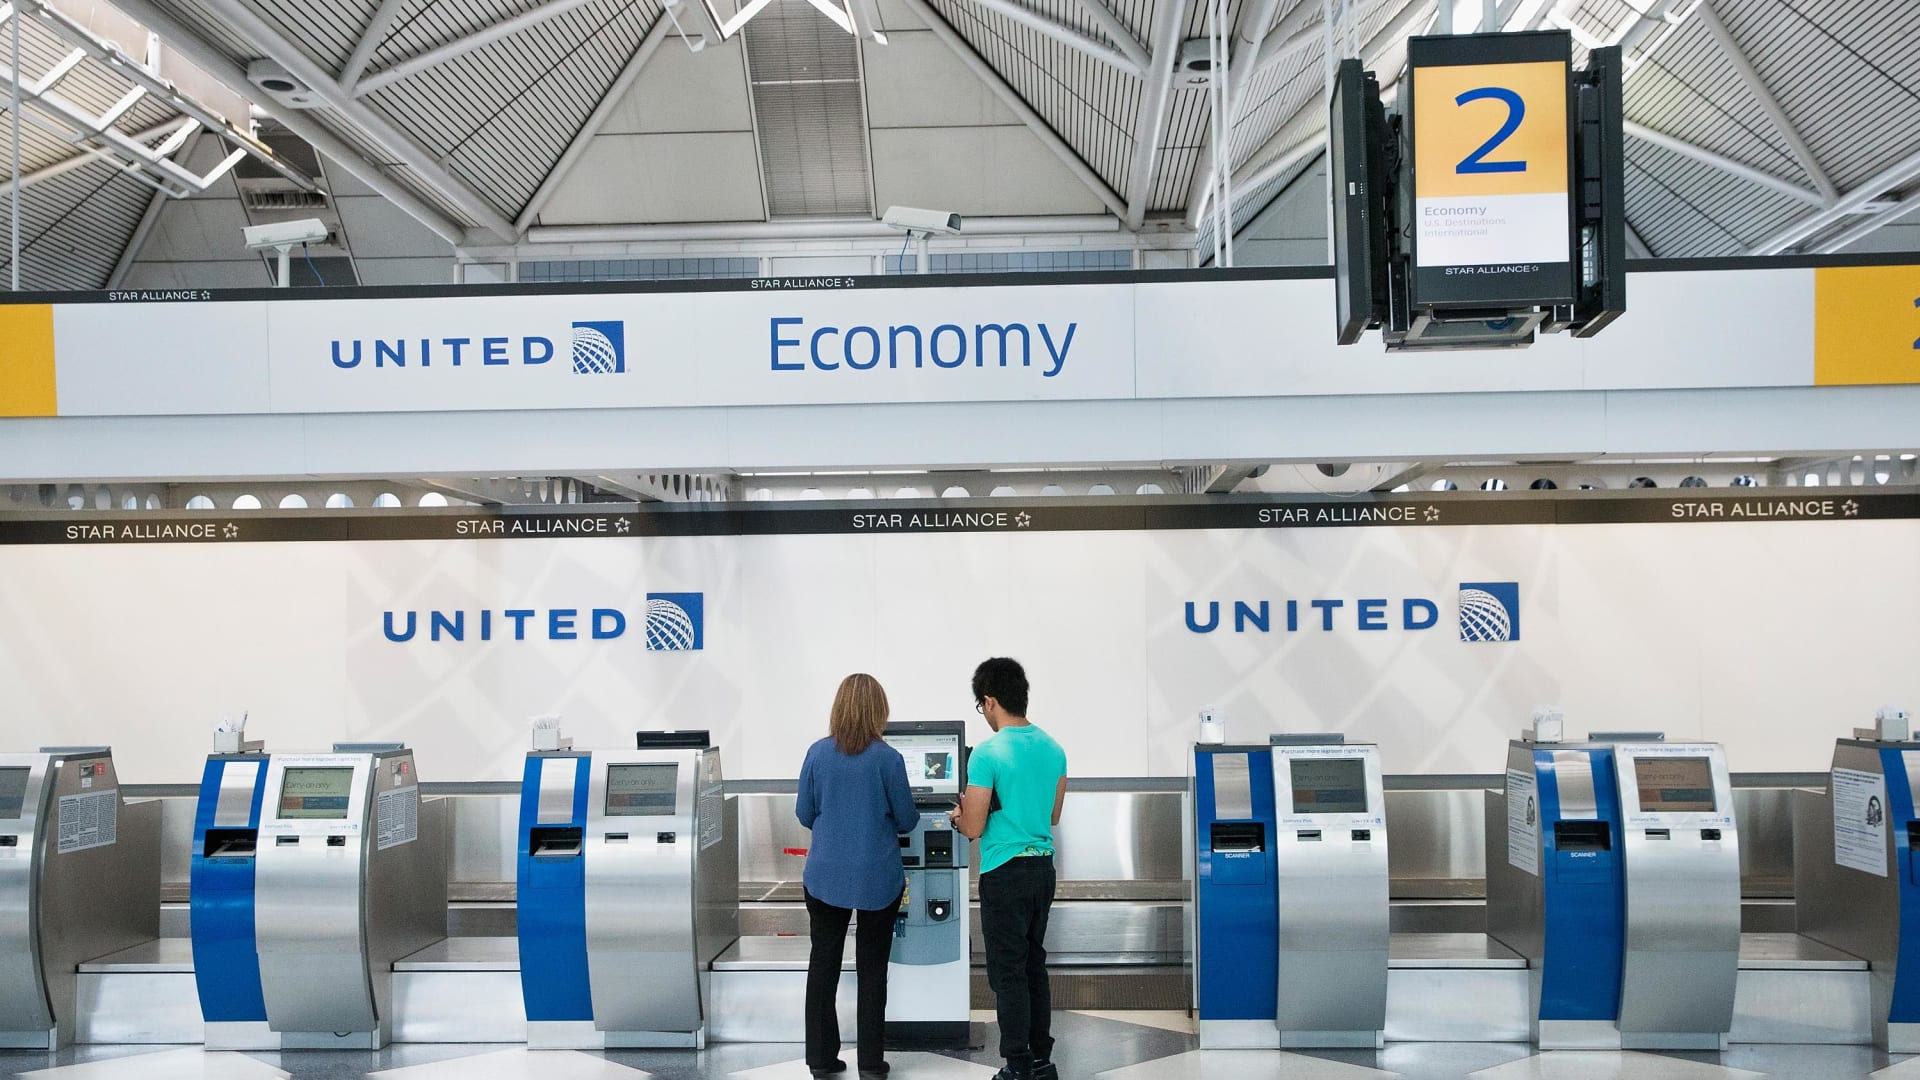 United Airlines Just Revealed a Very Big Secret. Here's Why You Should Pay Attention